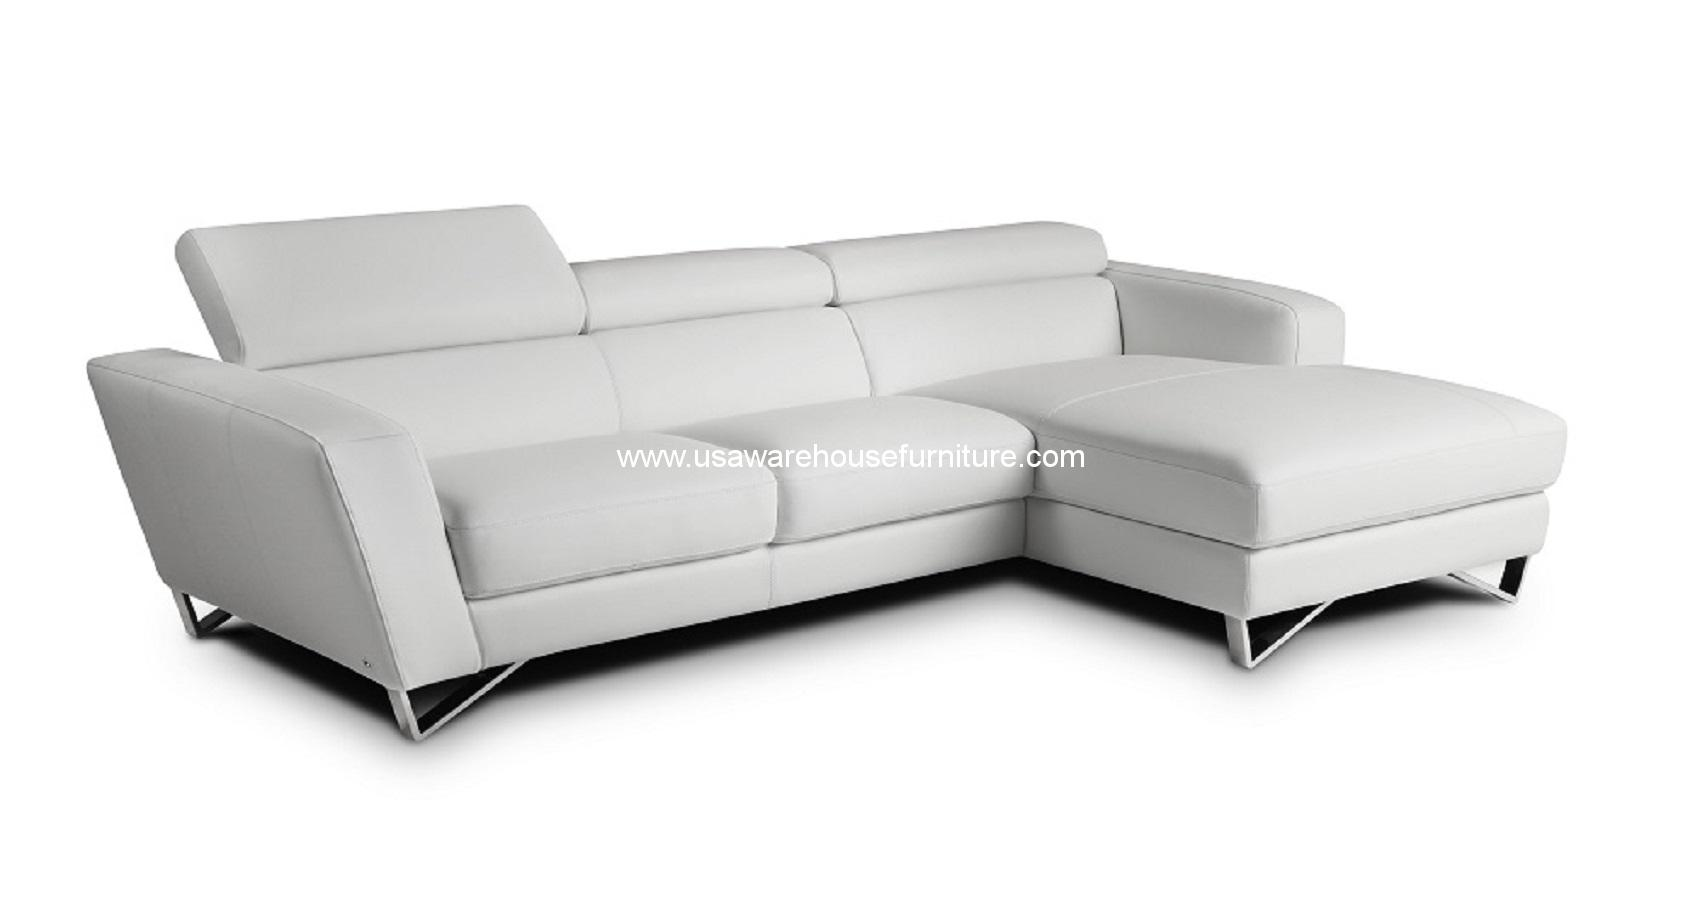 2 Piece Sparta Italian White Leather Modern Sectional